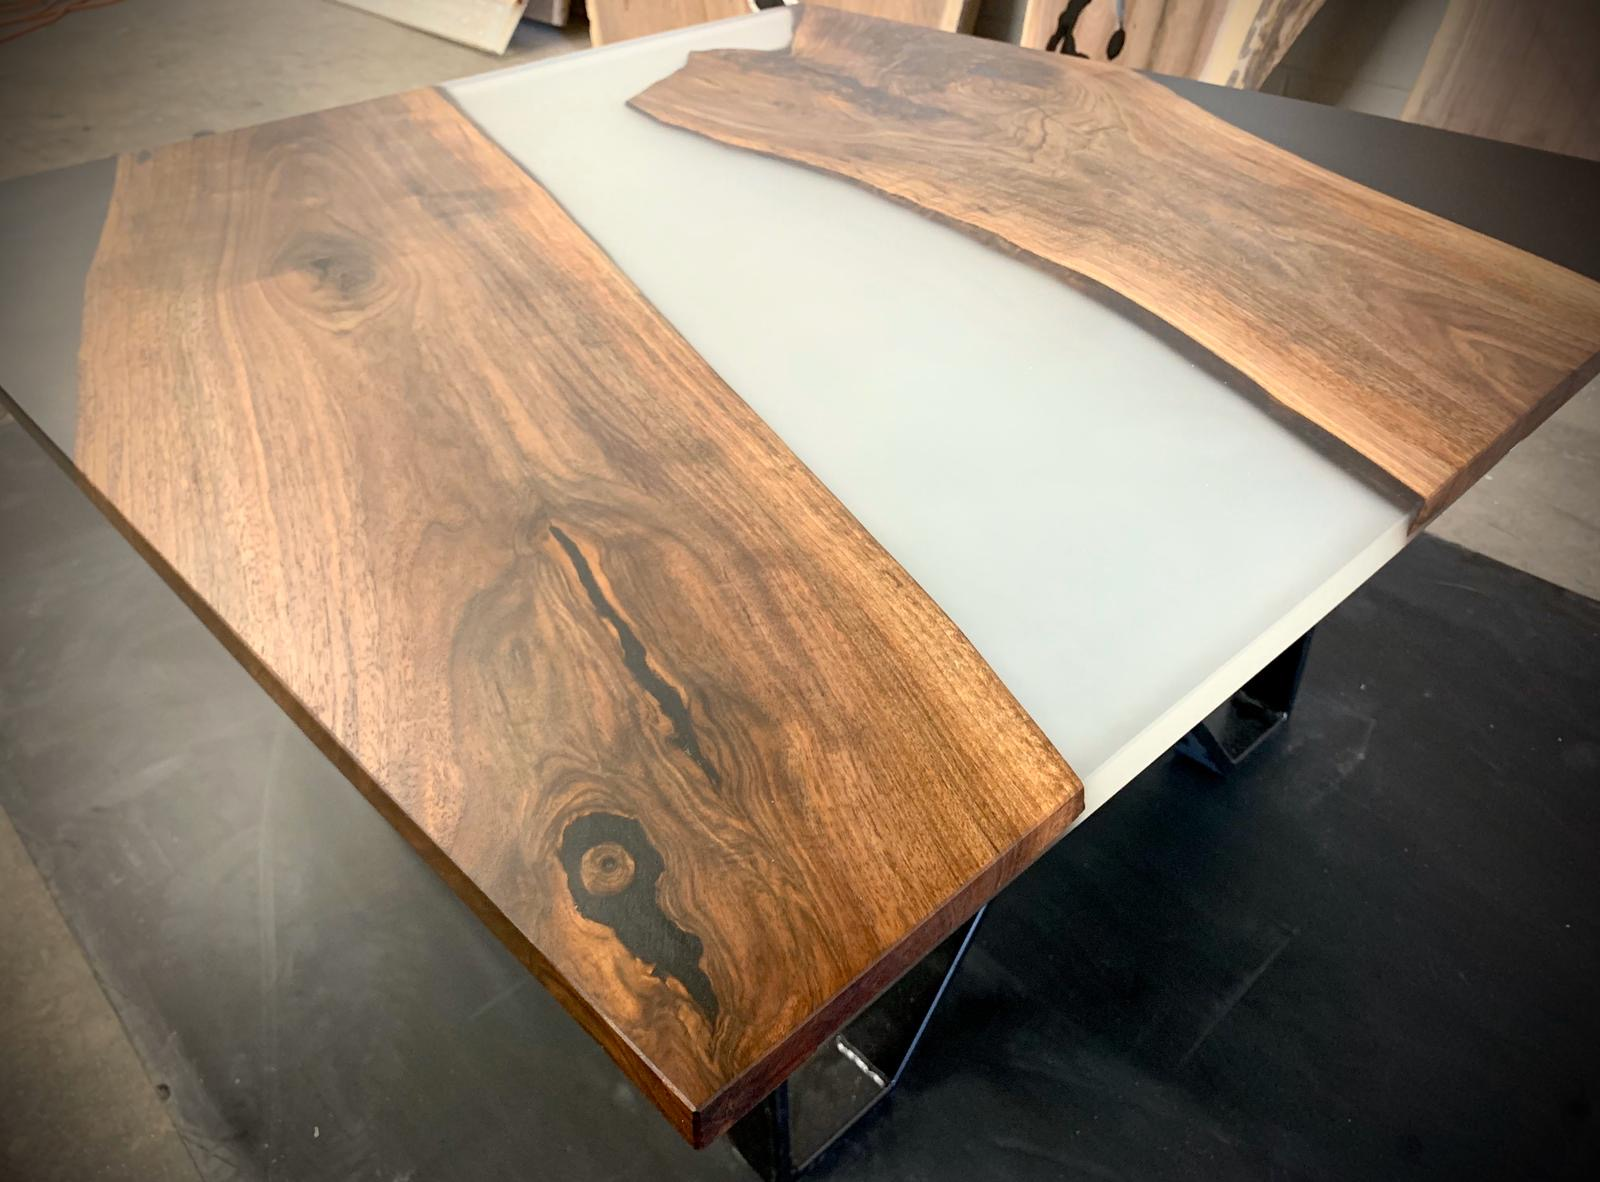 Coffee Table Black Walnut Wood With Black And White Epoxy Resin Woodwork Stories